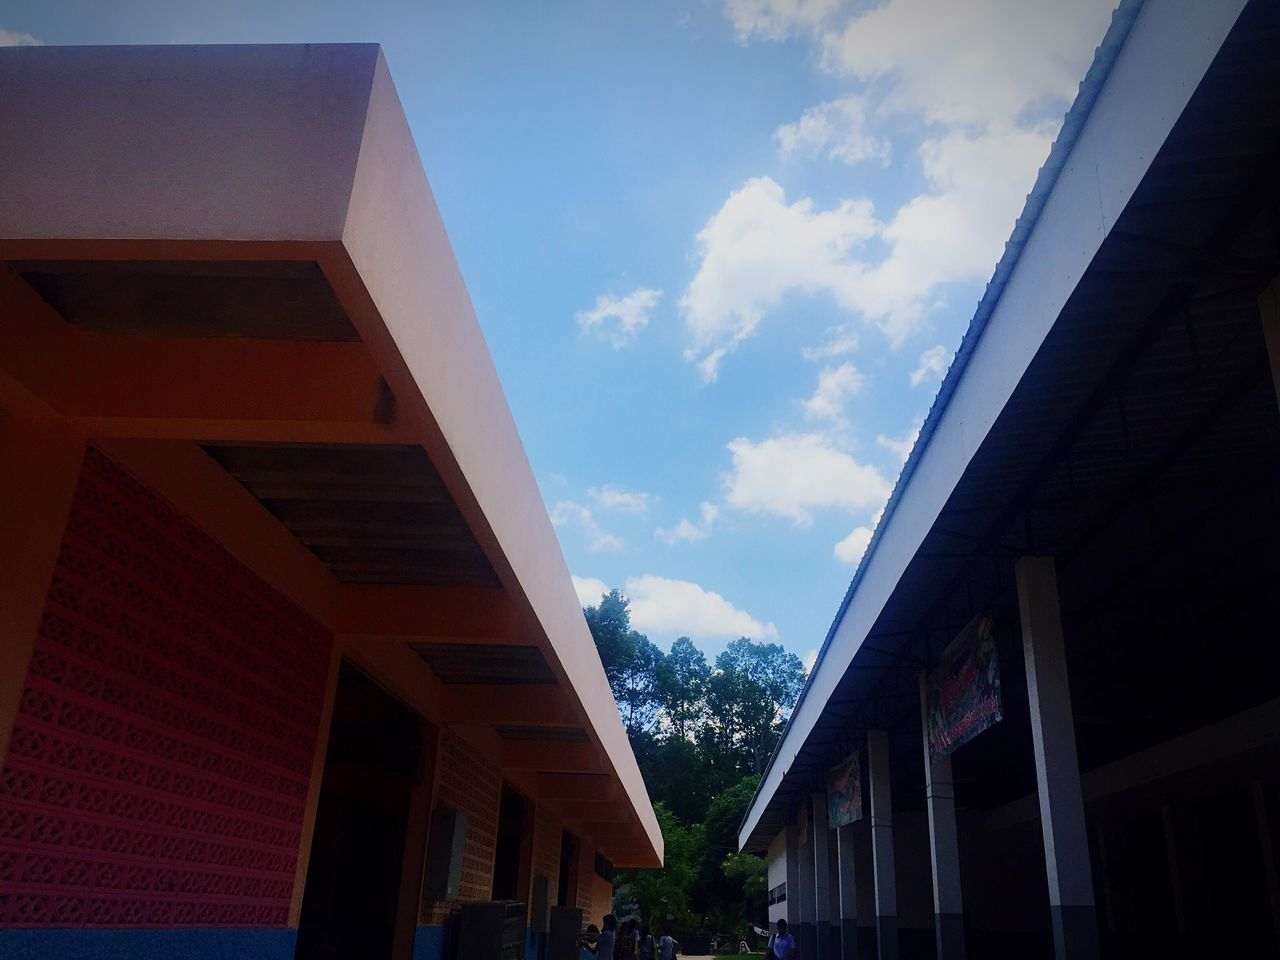 architecture, built structure, sky, low angle view, building exterior, cloud - sky, day, outdoors, no people, tree, nature